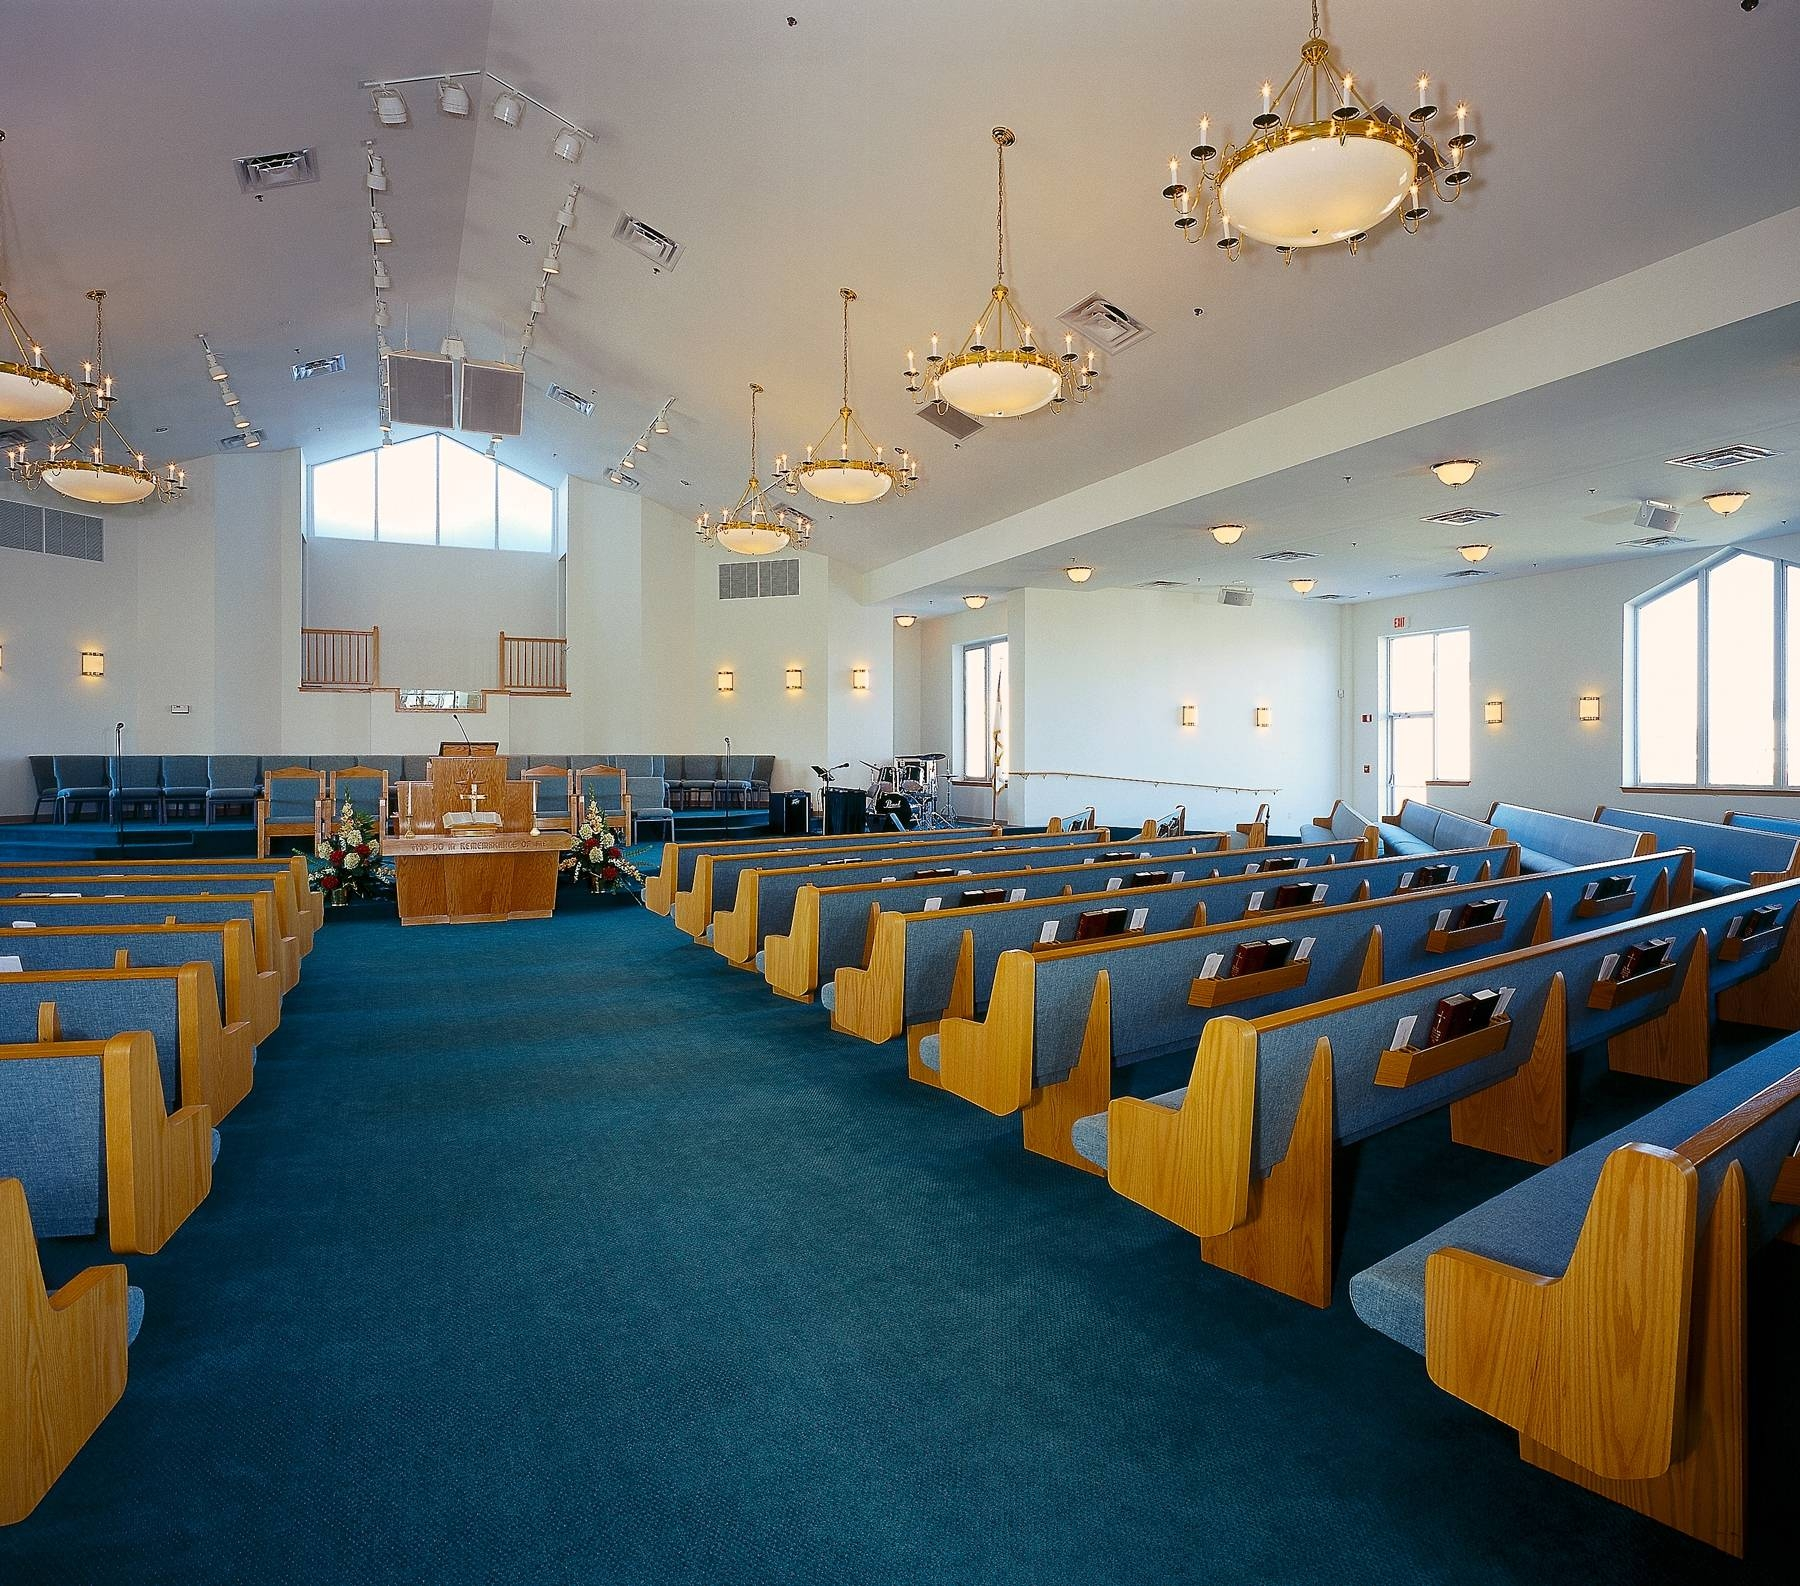 Lighting Manufacturers, Church Lighting, Commercial Intended For Church Pendant Lighting (View 11 of 15)